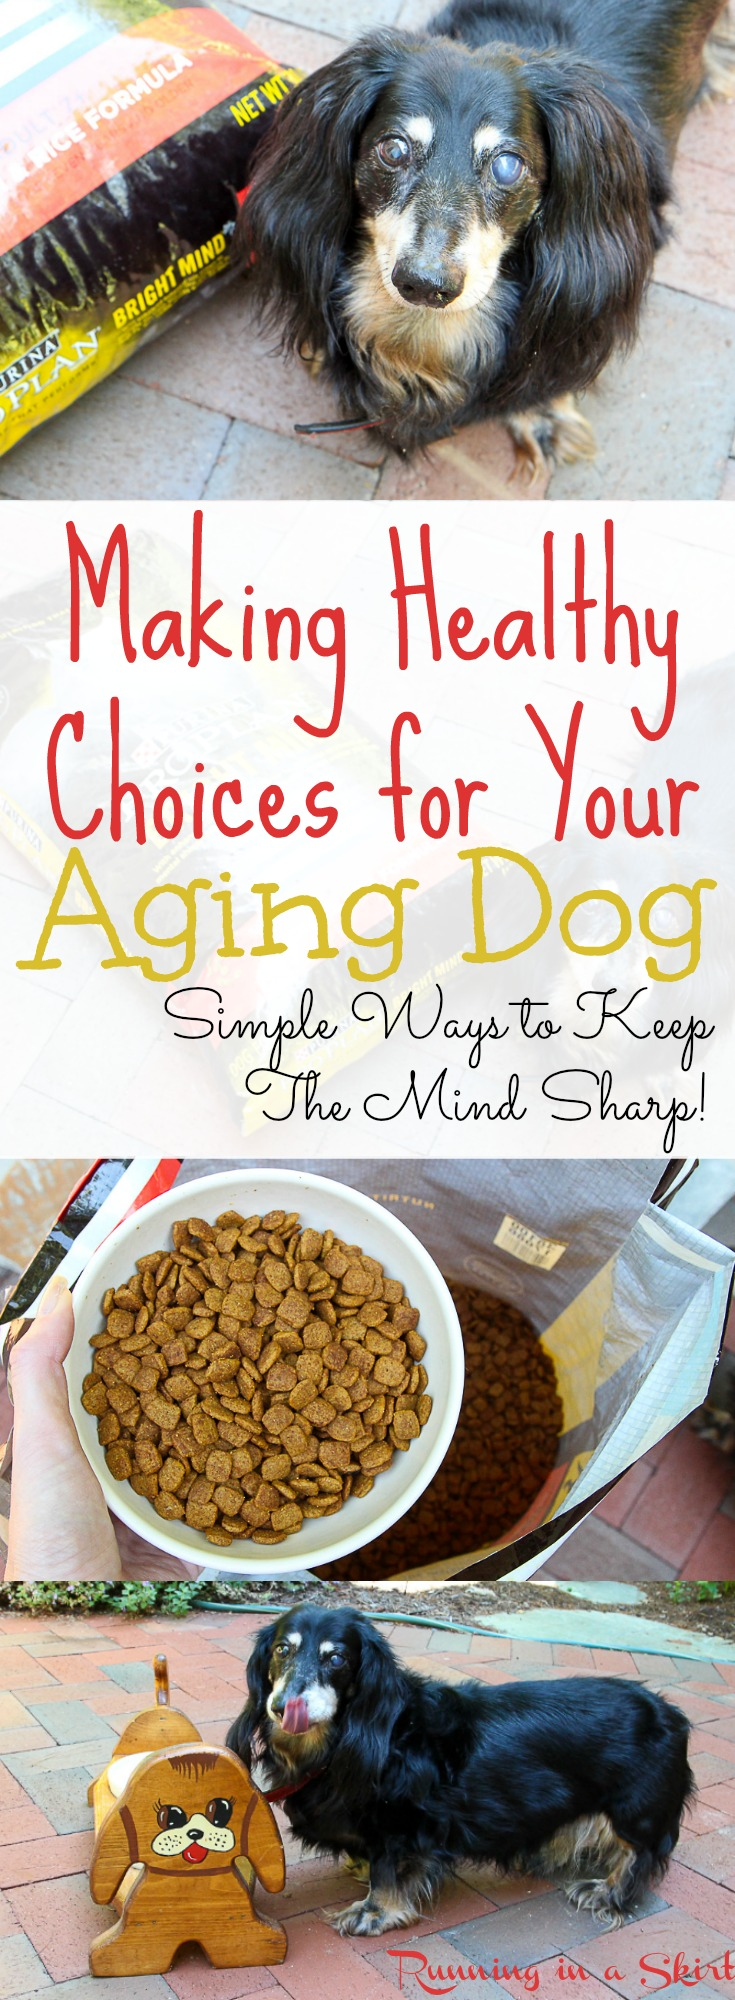 Healthy Choices for an Aging Dog